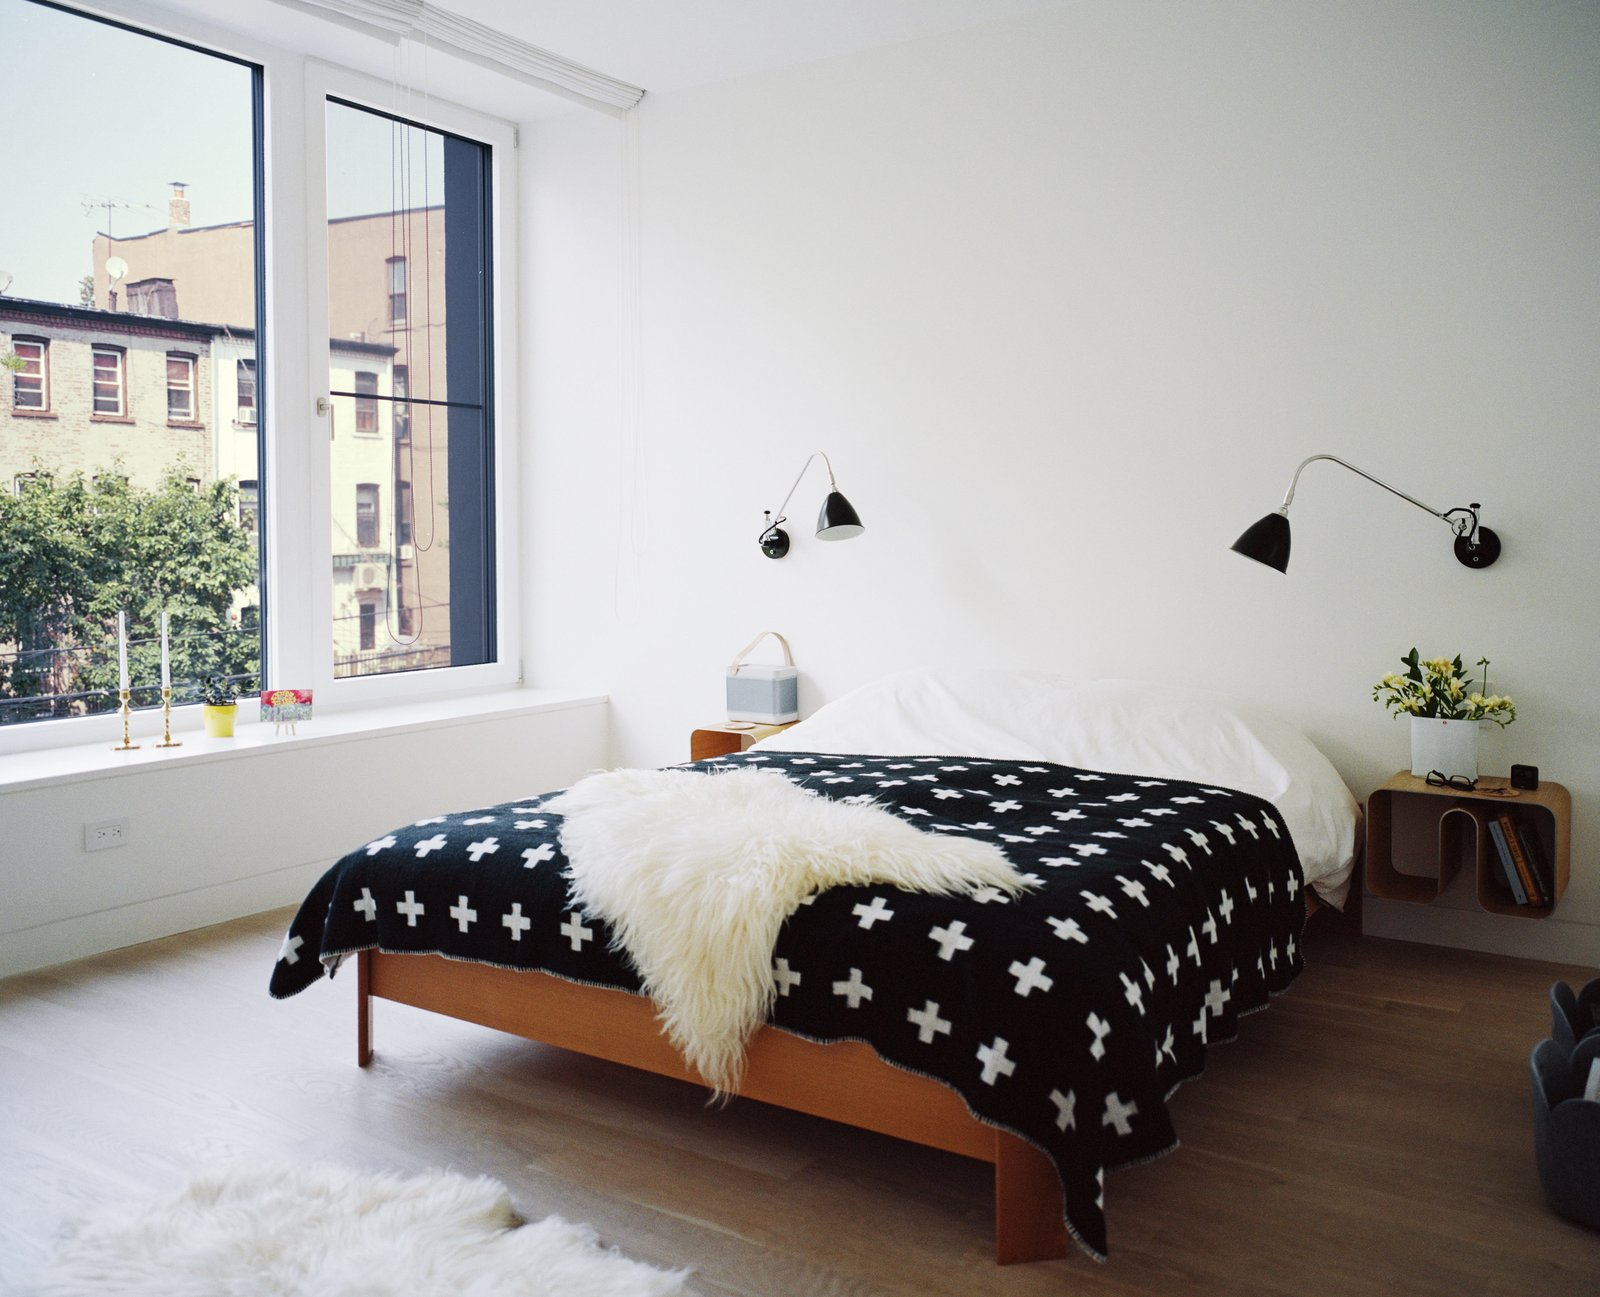 Set atop a BoConcept bed, a graphic blanket by Pia Wallén for HAY punctuates the master bedroom. The sconces are by Robert Dudley Best for Bestlite. Tagged: Bedroom, Bed, Light Hardwood Floor, and Wall Lighting.  Bedrooms by Dwell from Our Scandinavian Style Dreams Come True in This Brooklyn Town House